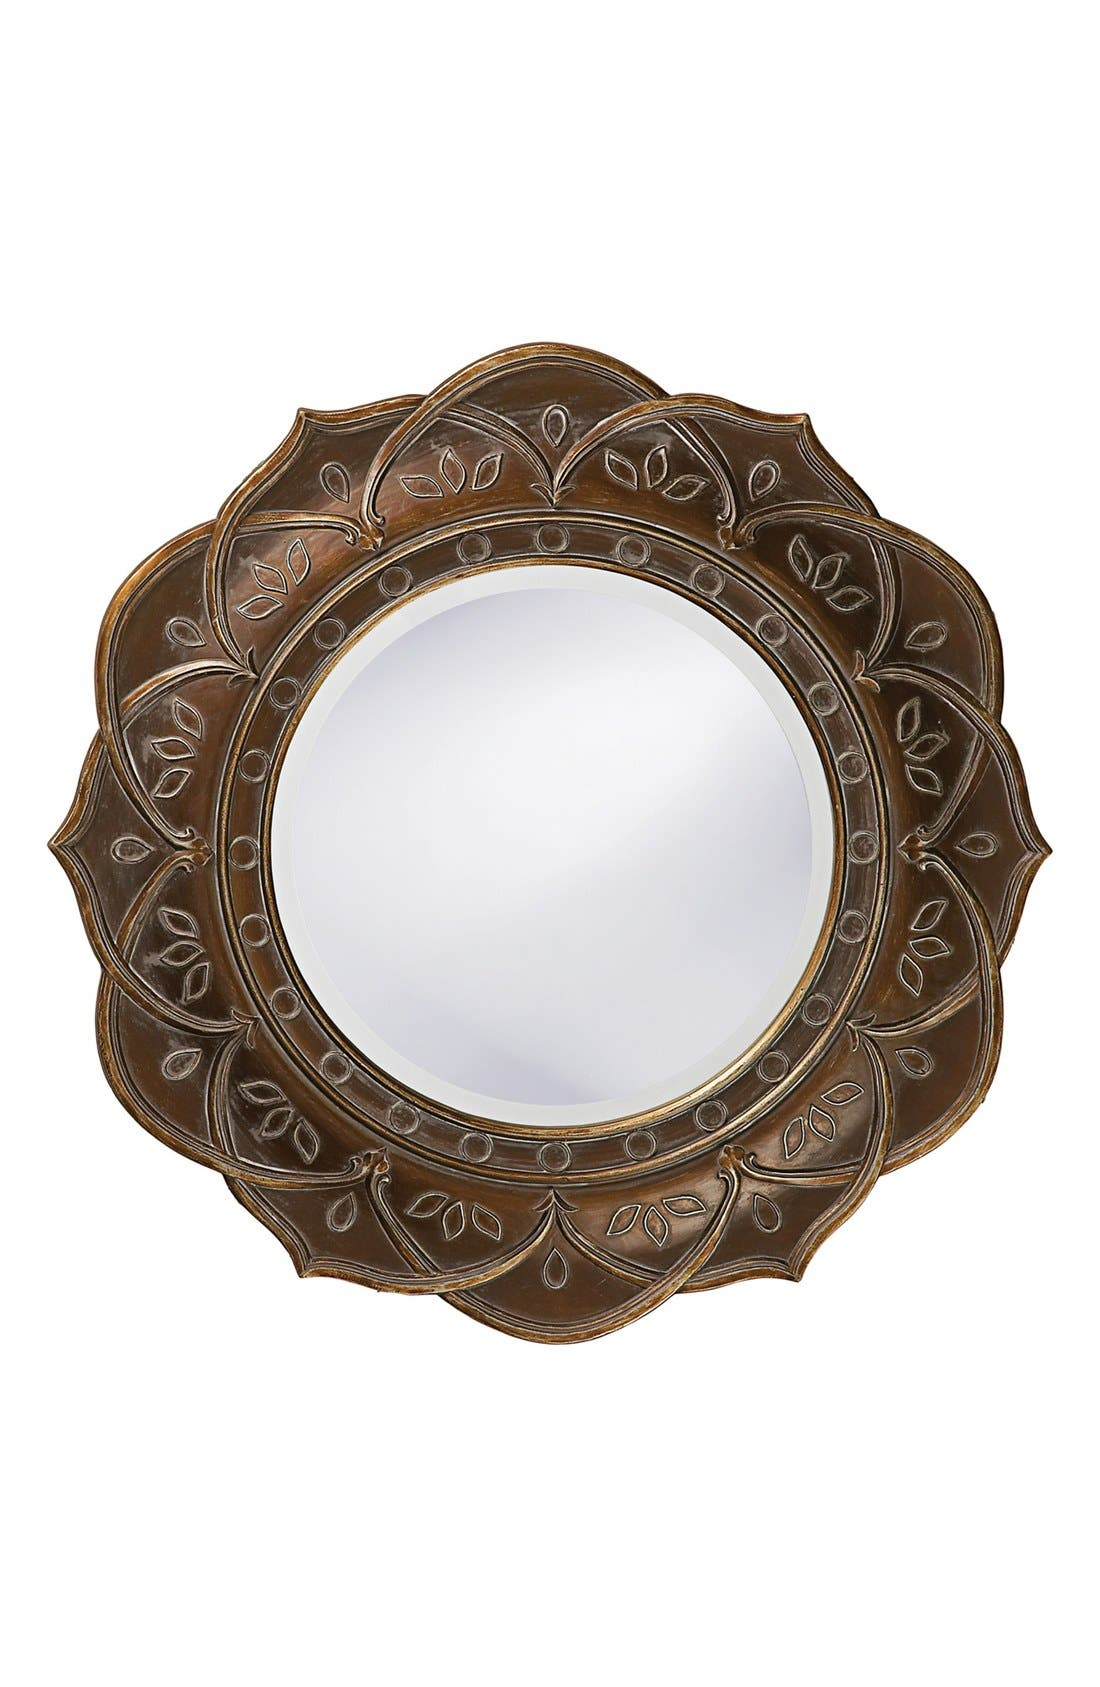 Main Image - Howard Elliott Collection 'Erica' Mirror